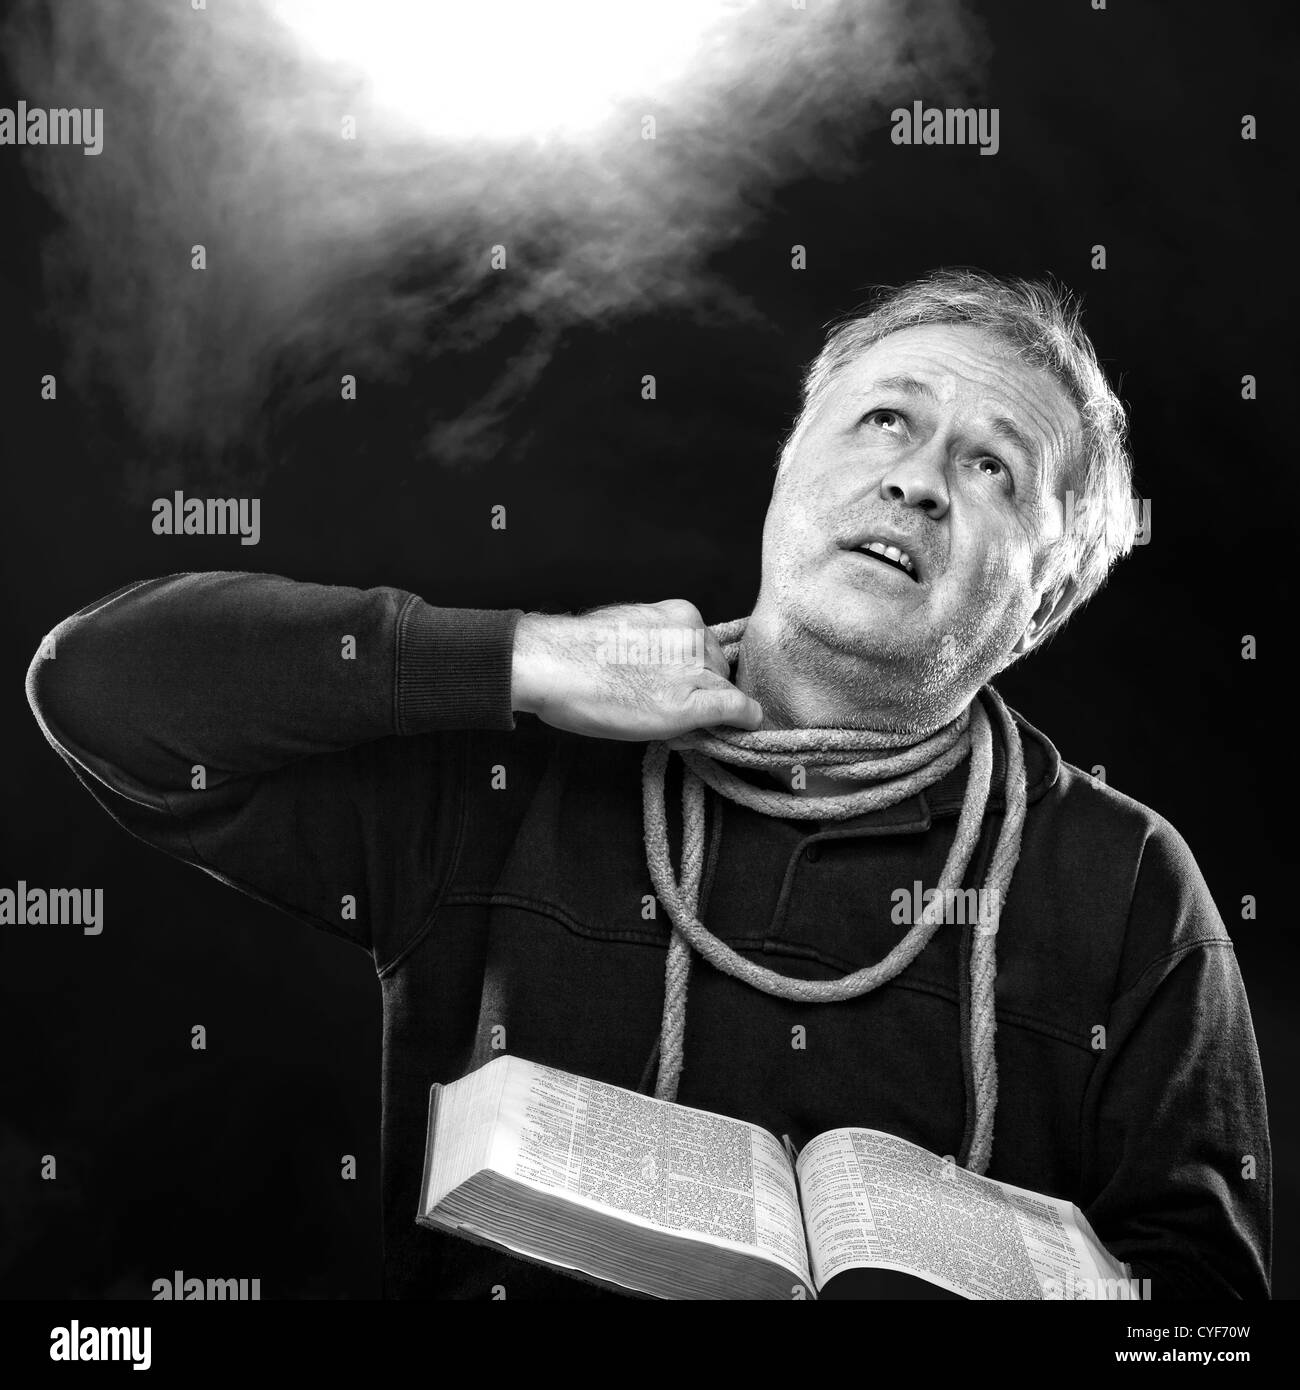 Man with Bible trying to untie rope from neck: O Jerusalem: loose thyself from the bands of thy neck, O captive - Stock Image